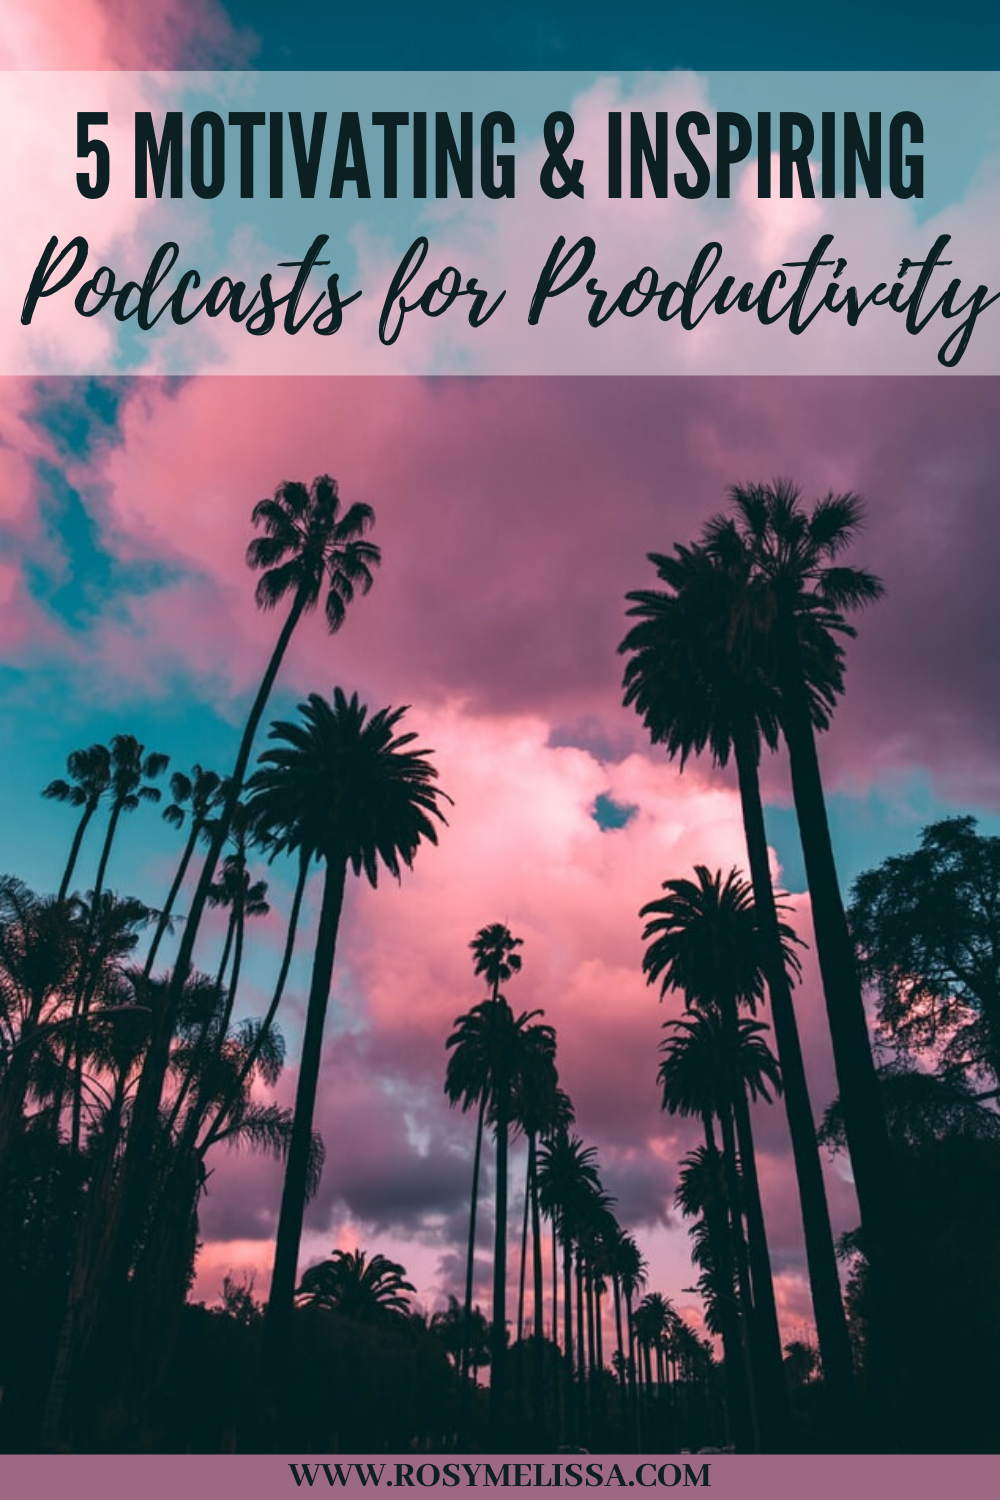 podcasts for productivity, business podcasts, podcasts to listen to, motivating podcasts, inspiring podcast